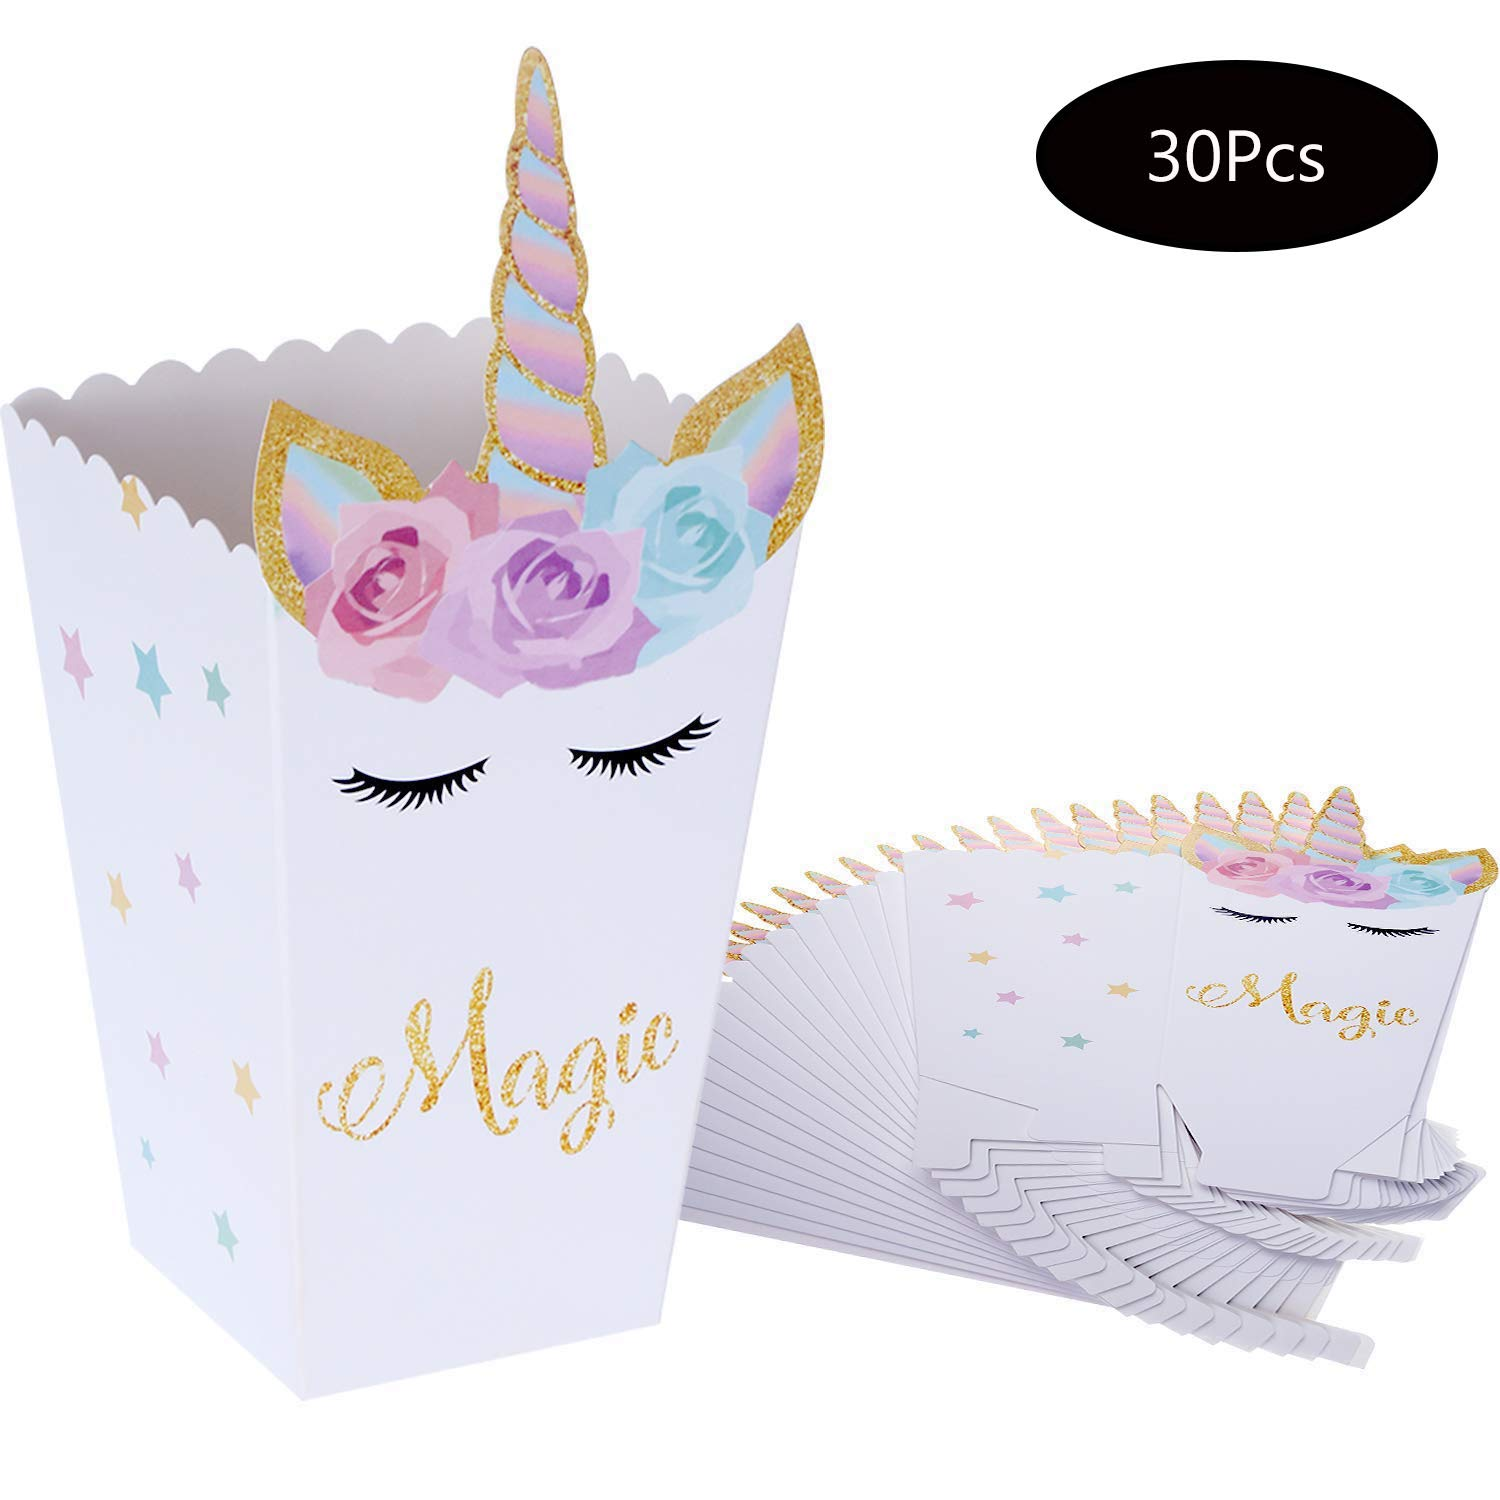 Forsun 30 Pieces Popcorn Snack Boxes Rainbow Unicorn Pattern Treat Box Popcorn Container for Baby Shower Birthday Party Supplies